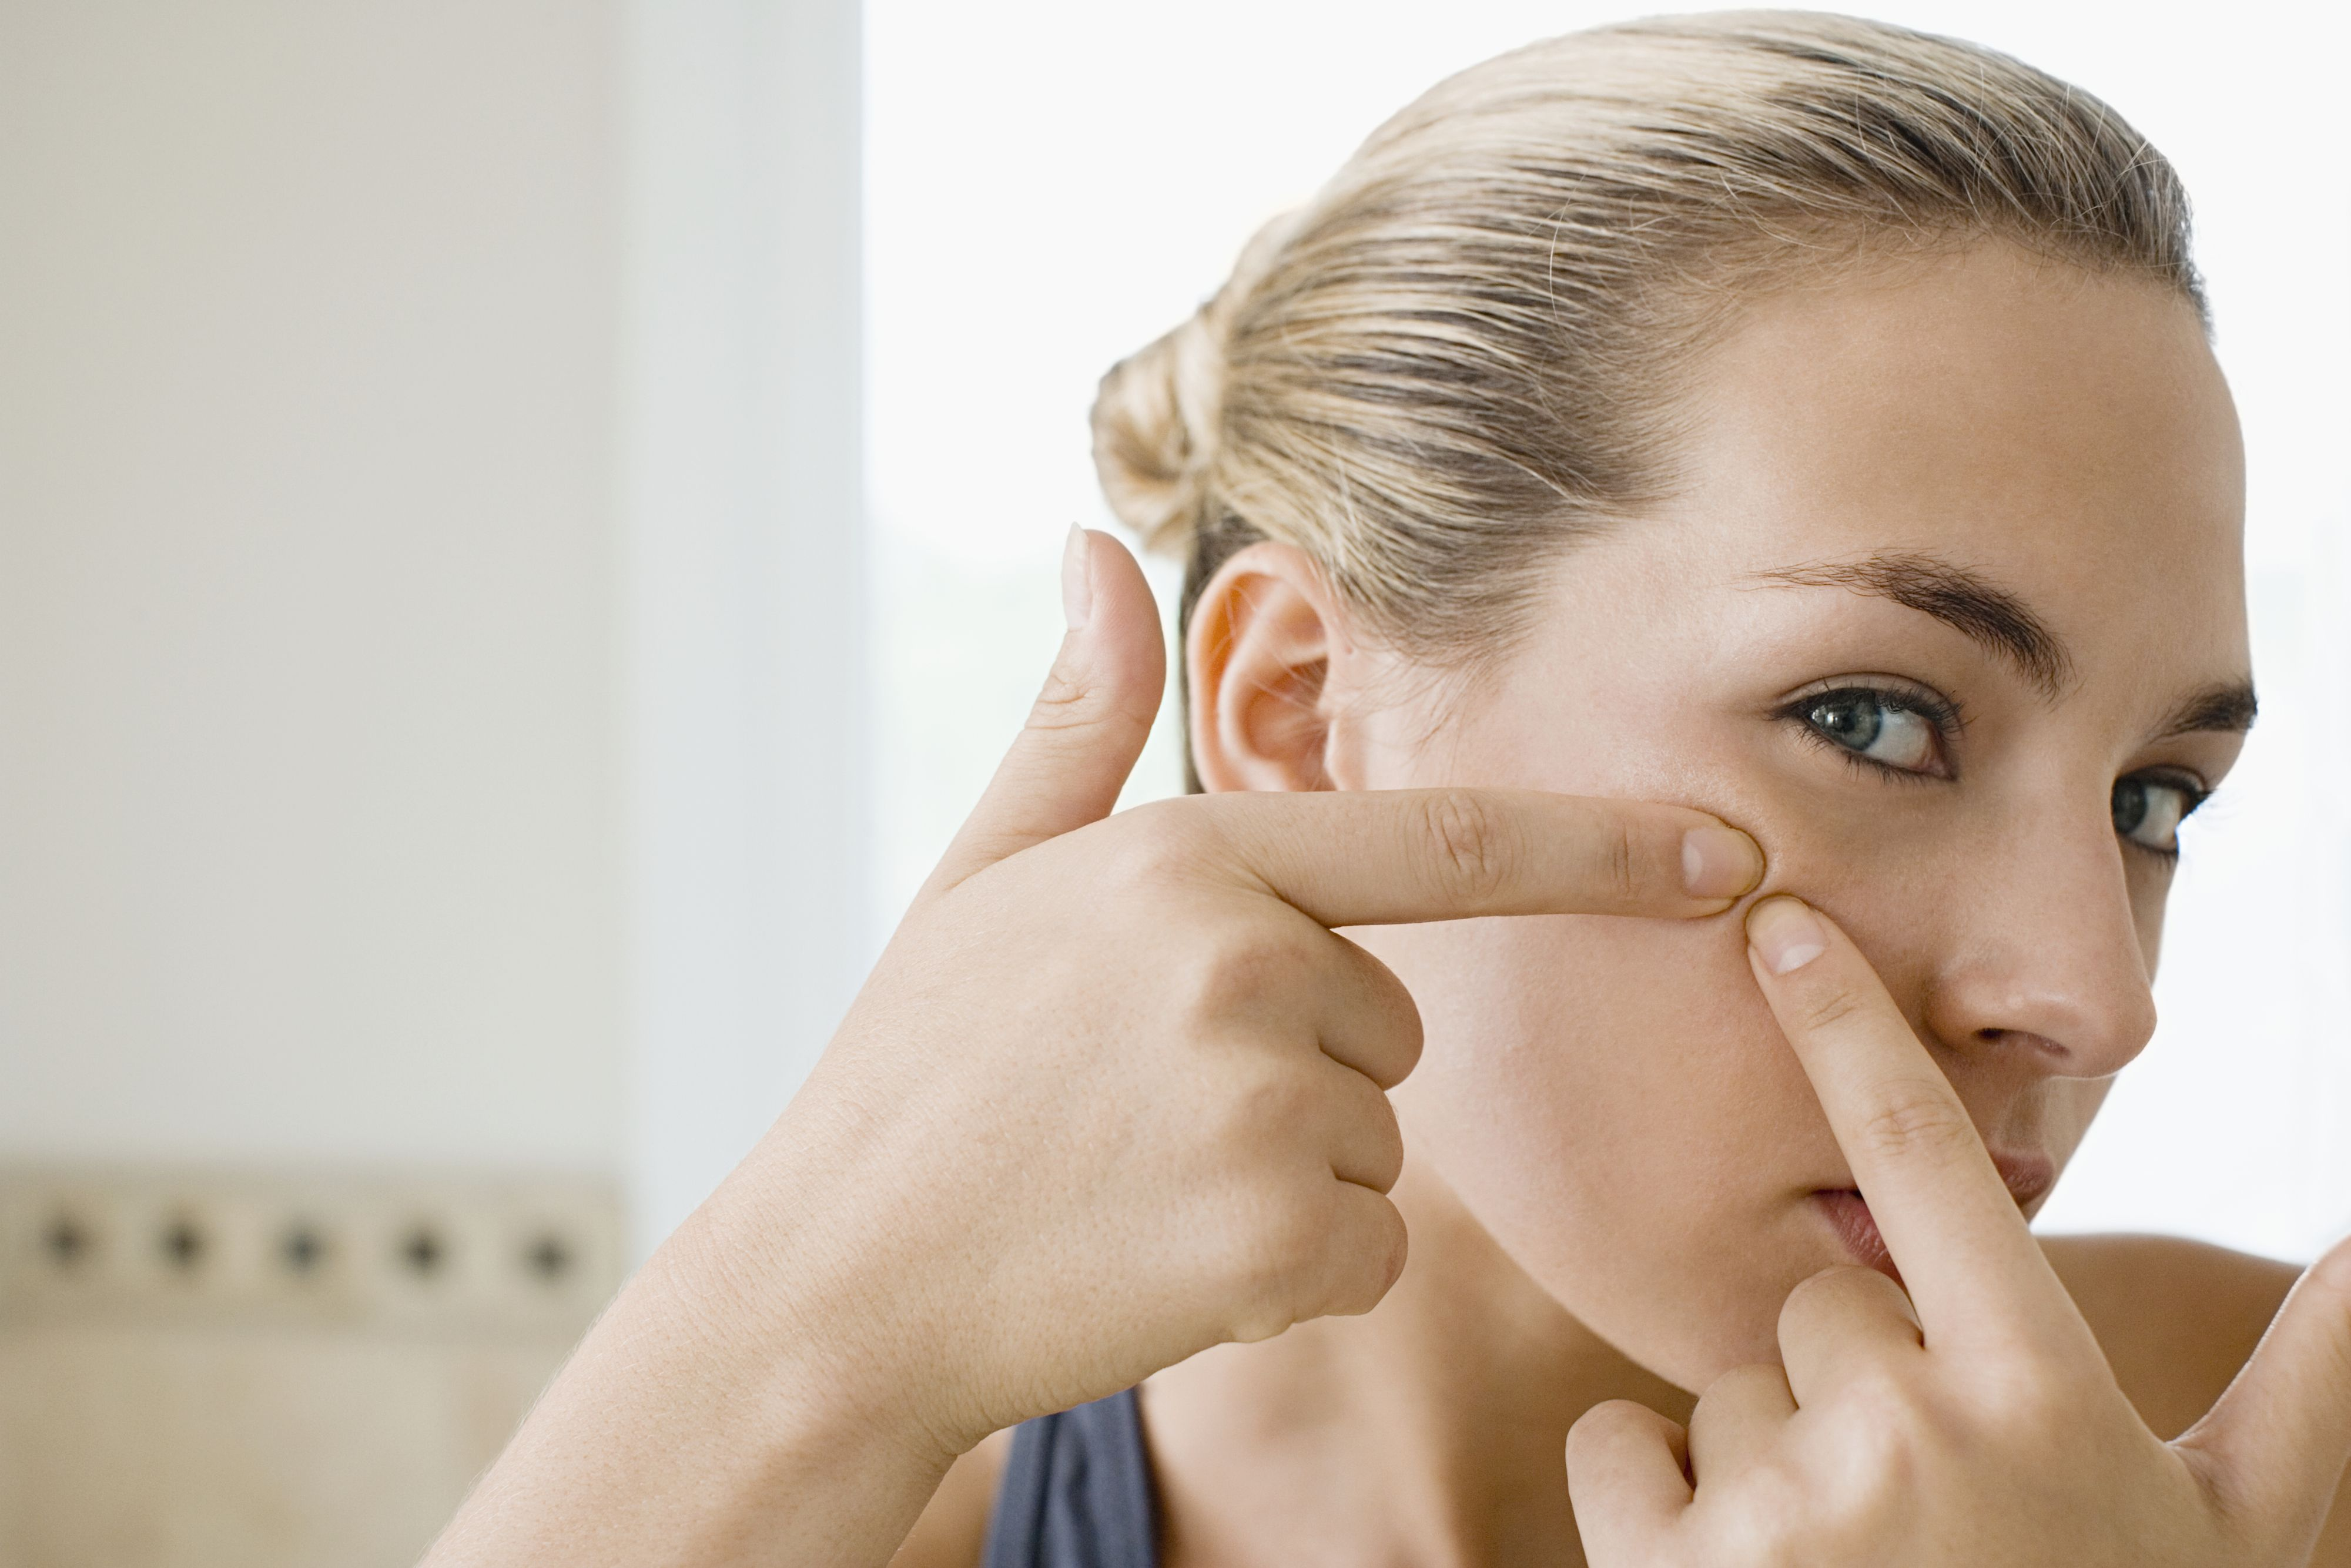 Blemish Rescue: Everything About Pimple Popping You Should Know Blemish Rescue: Everything About Pimple Popping You Should Know new picture